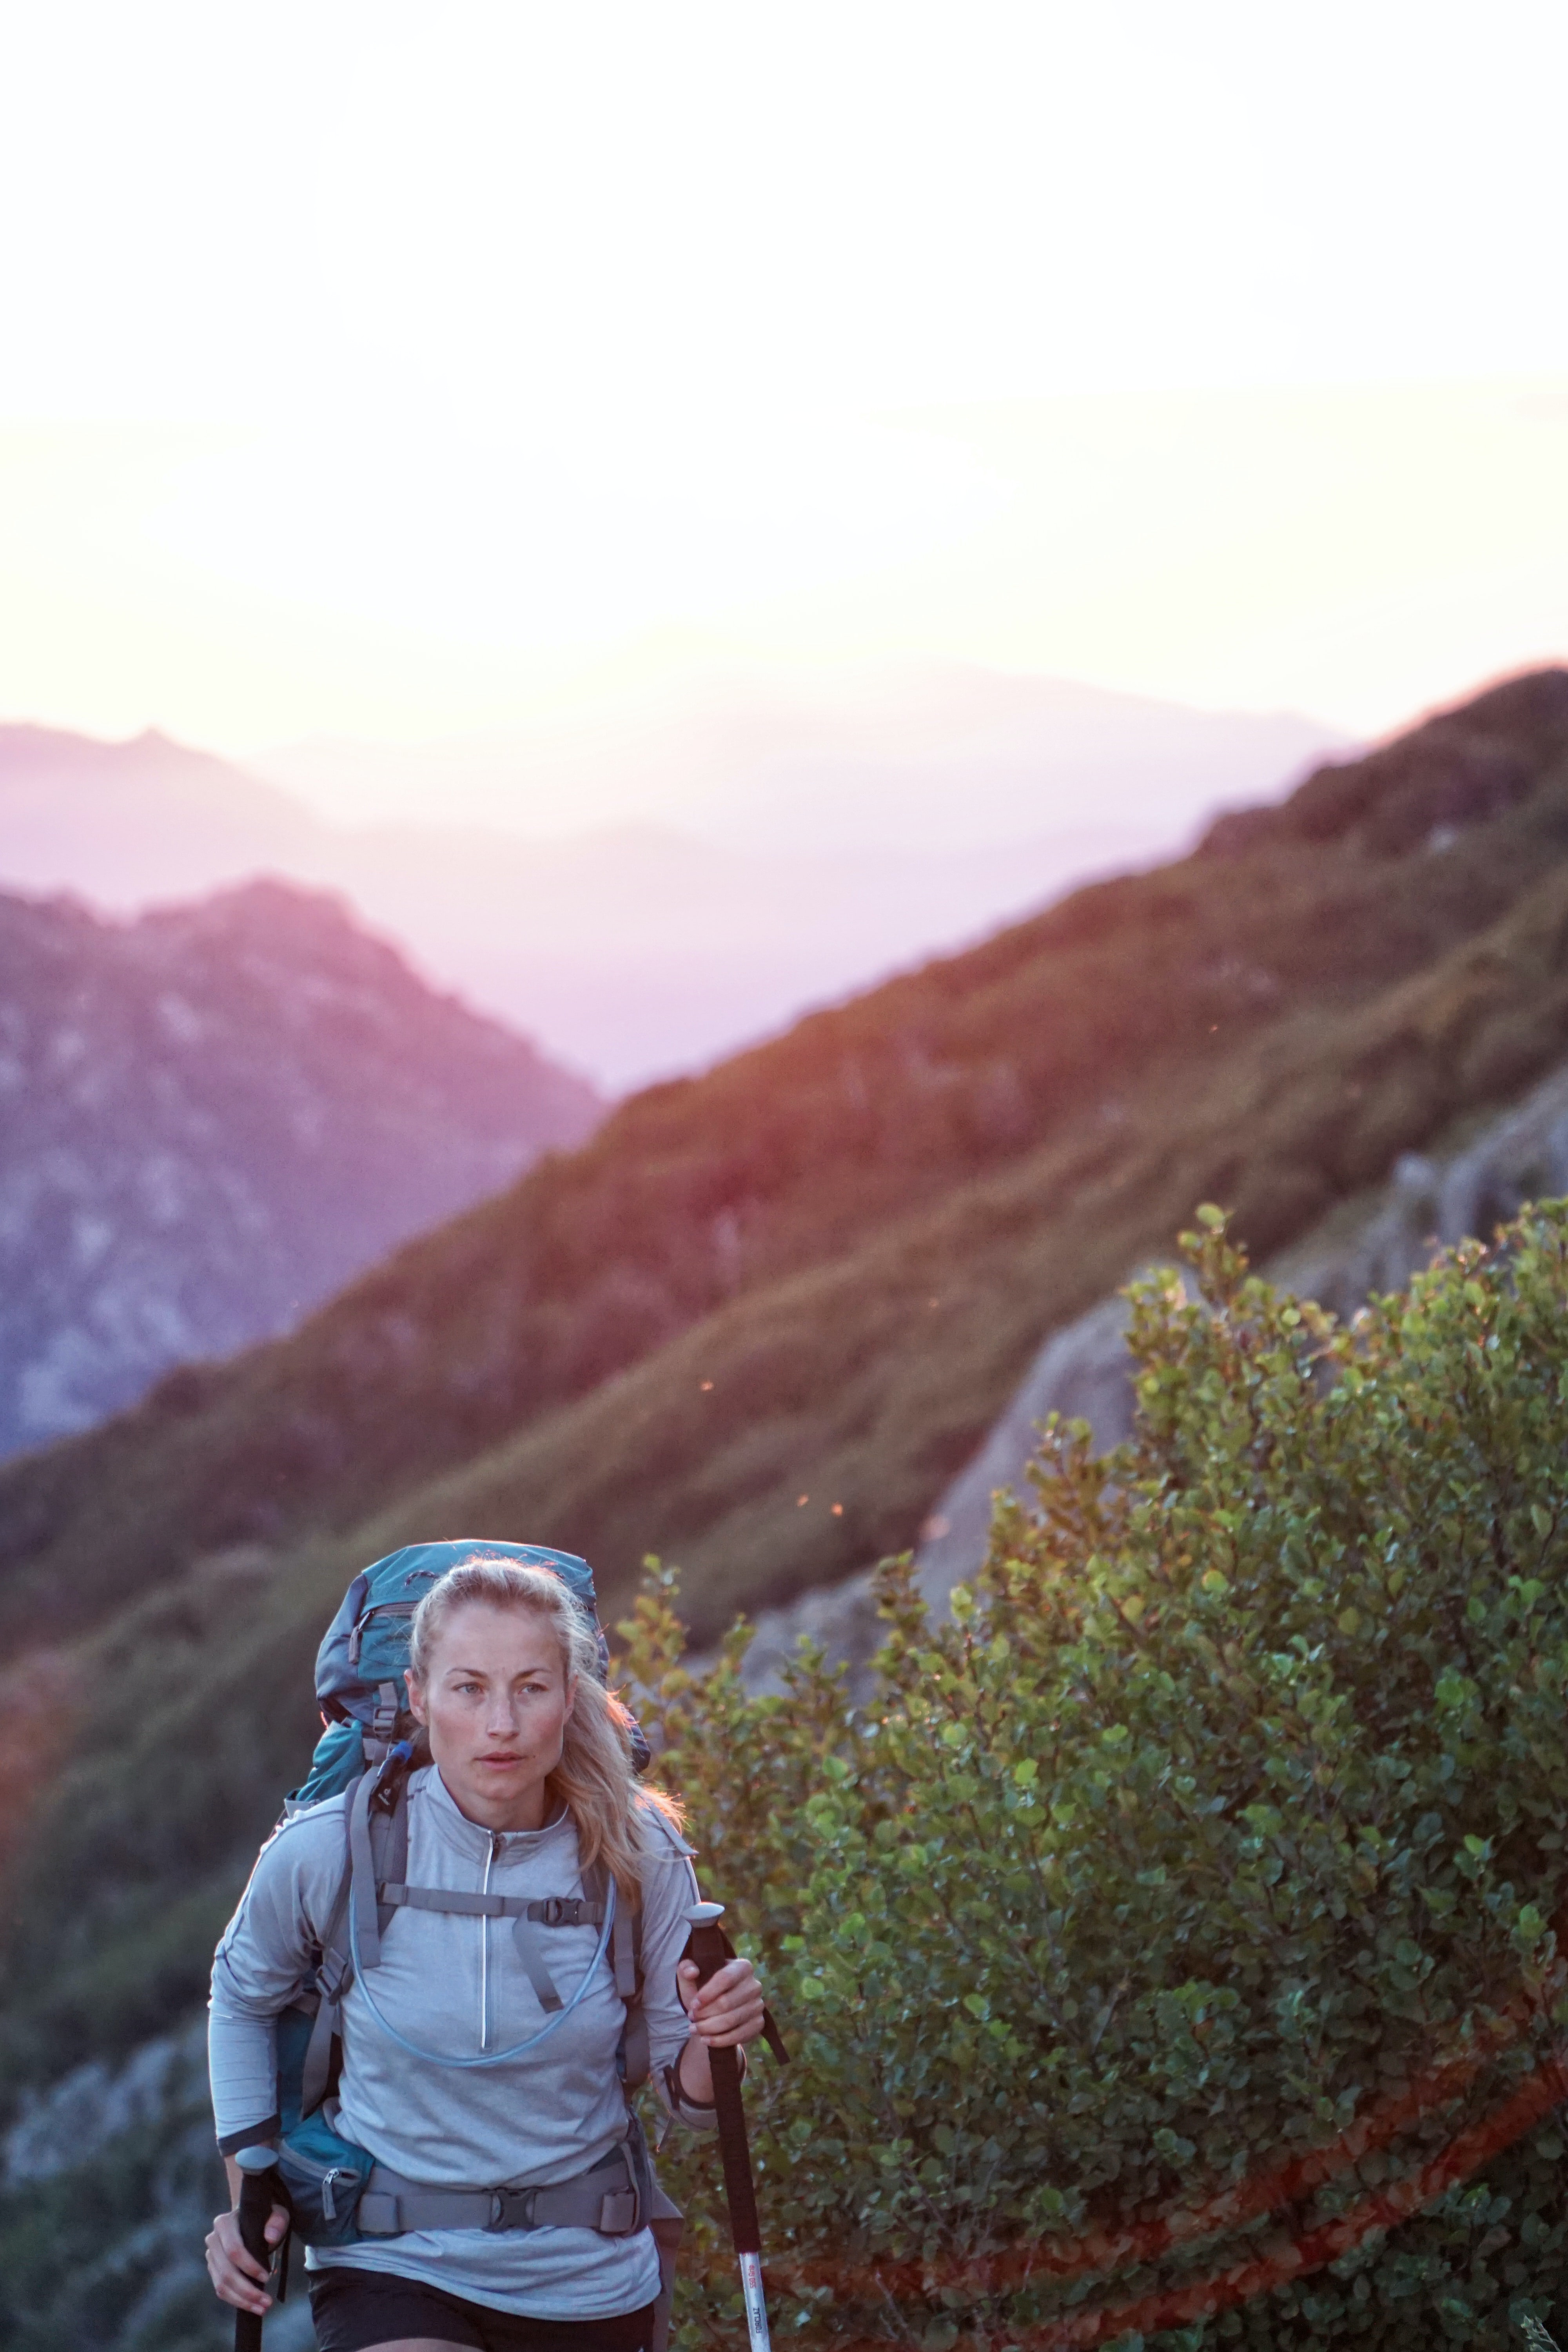 A blonde woman wears a backpack and uses walking poles while hiking near bushes, a sunset over mountains behind her